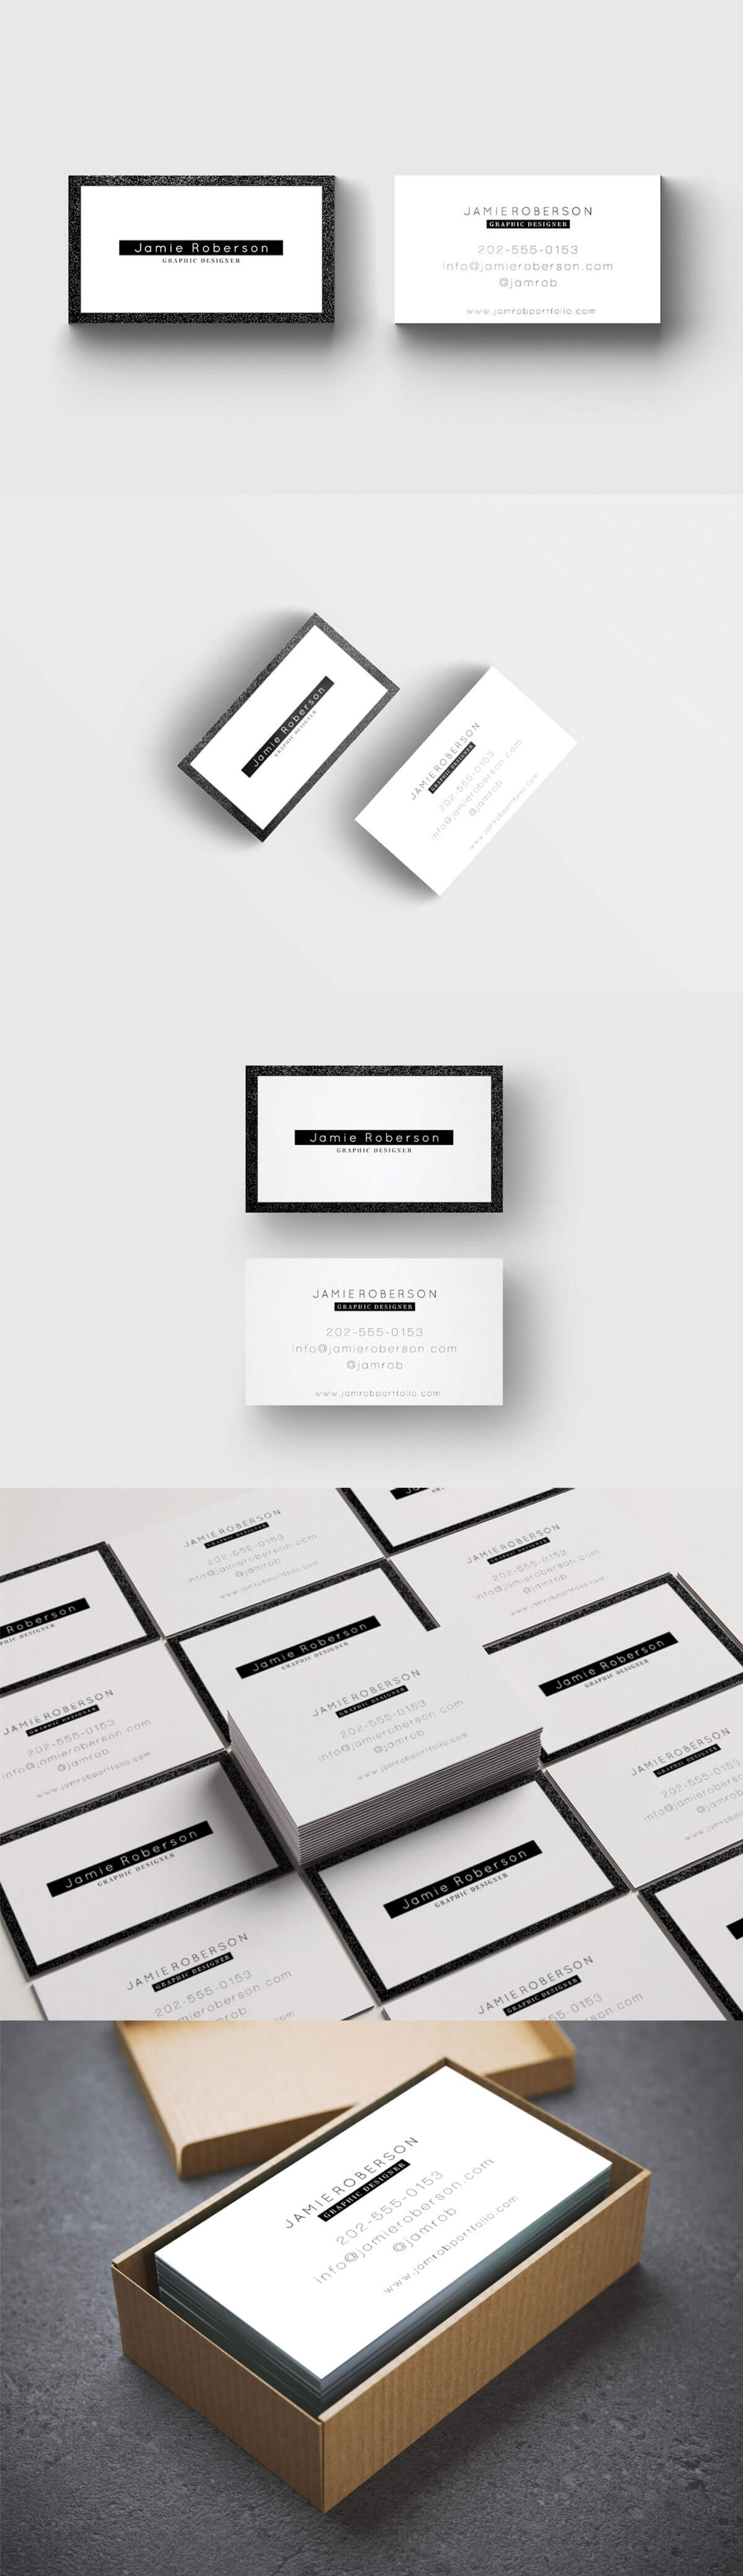 Free Black White Business Card PSD Template